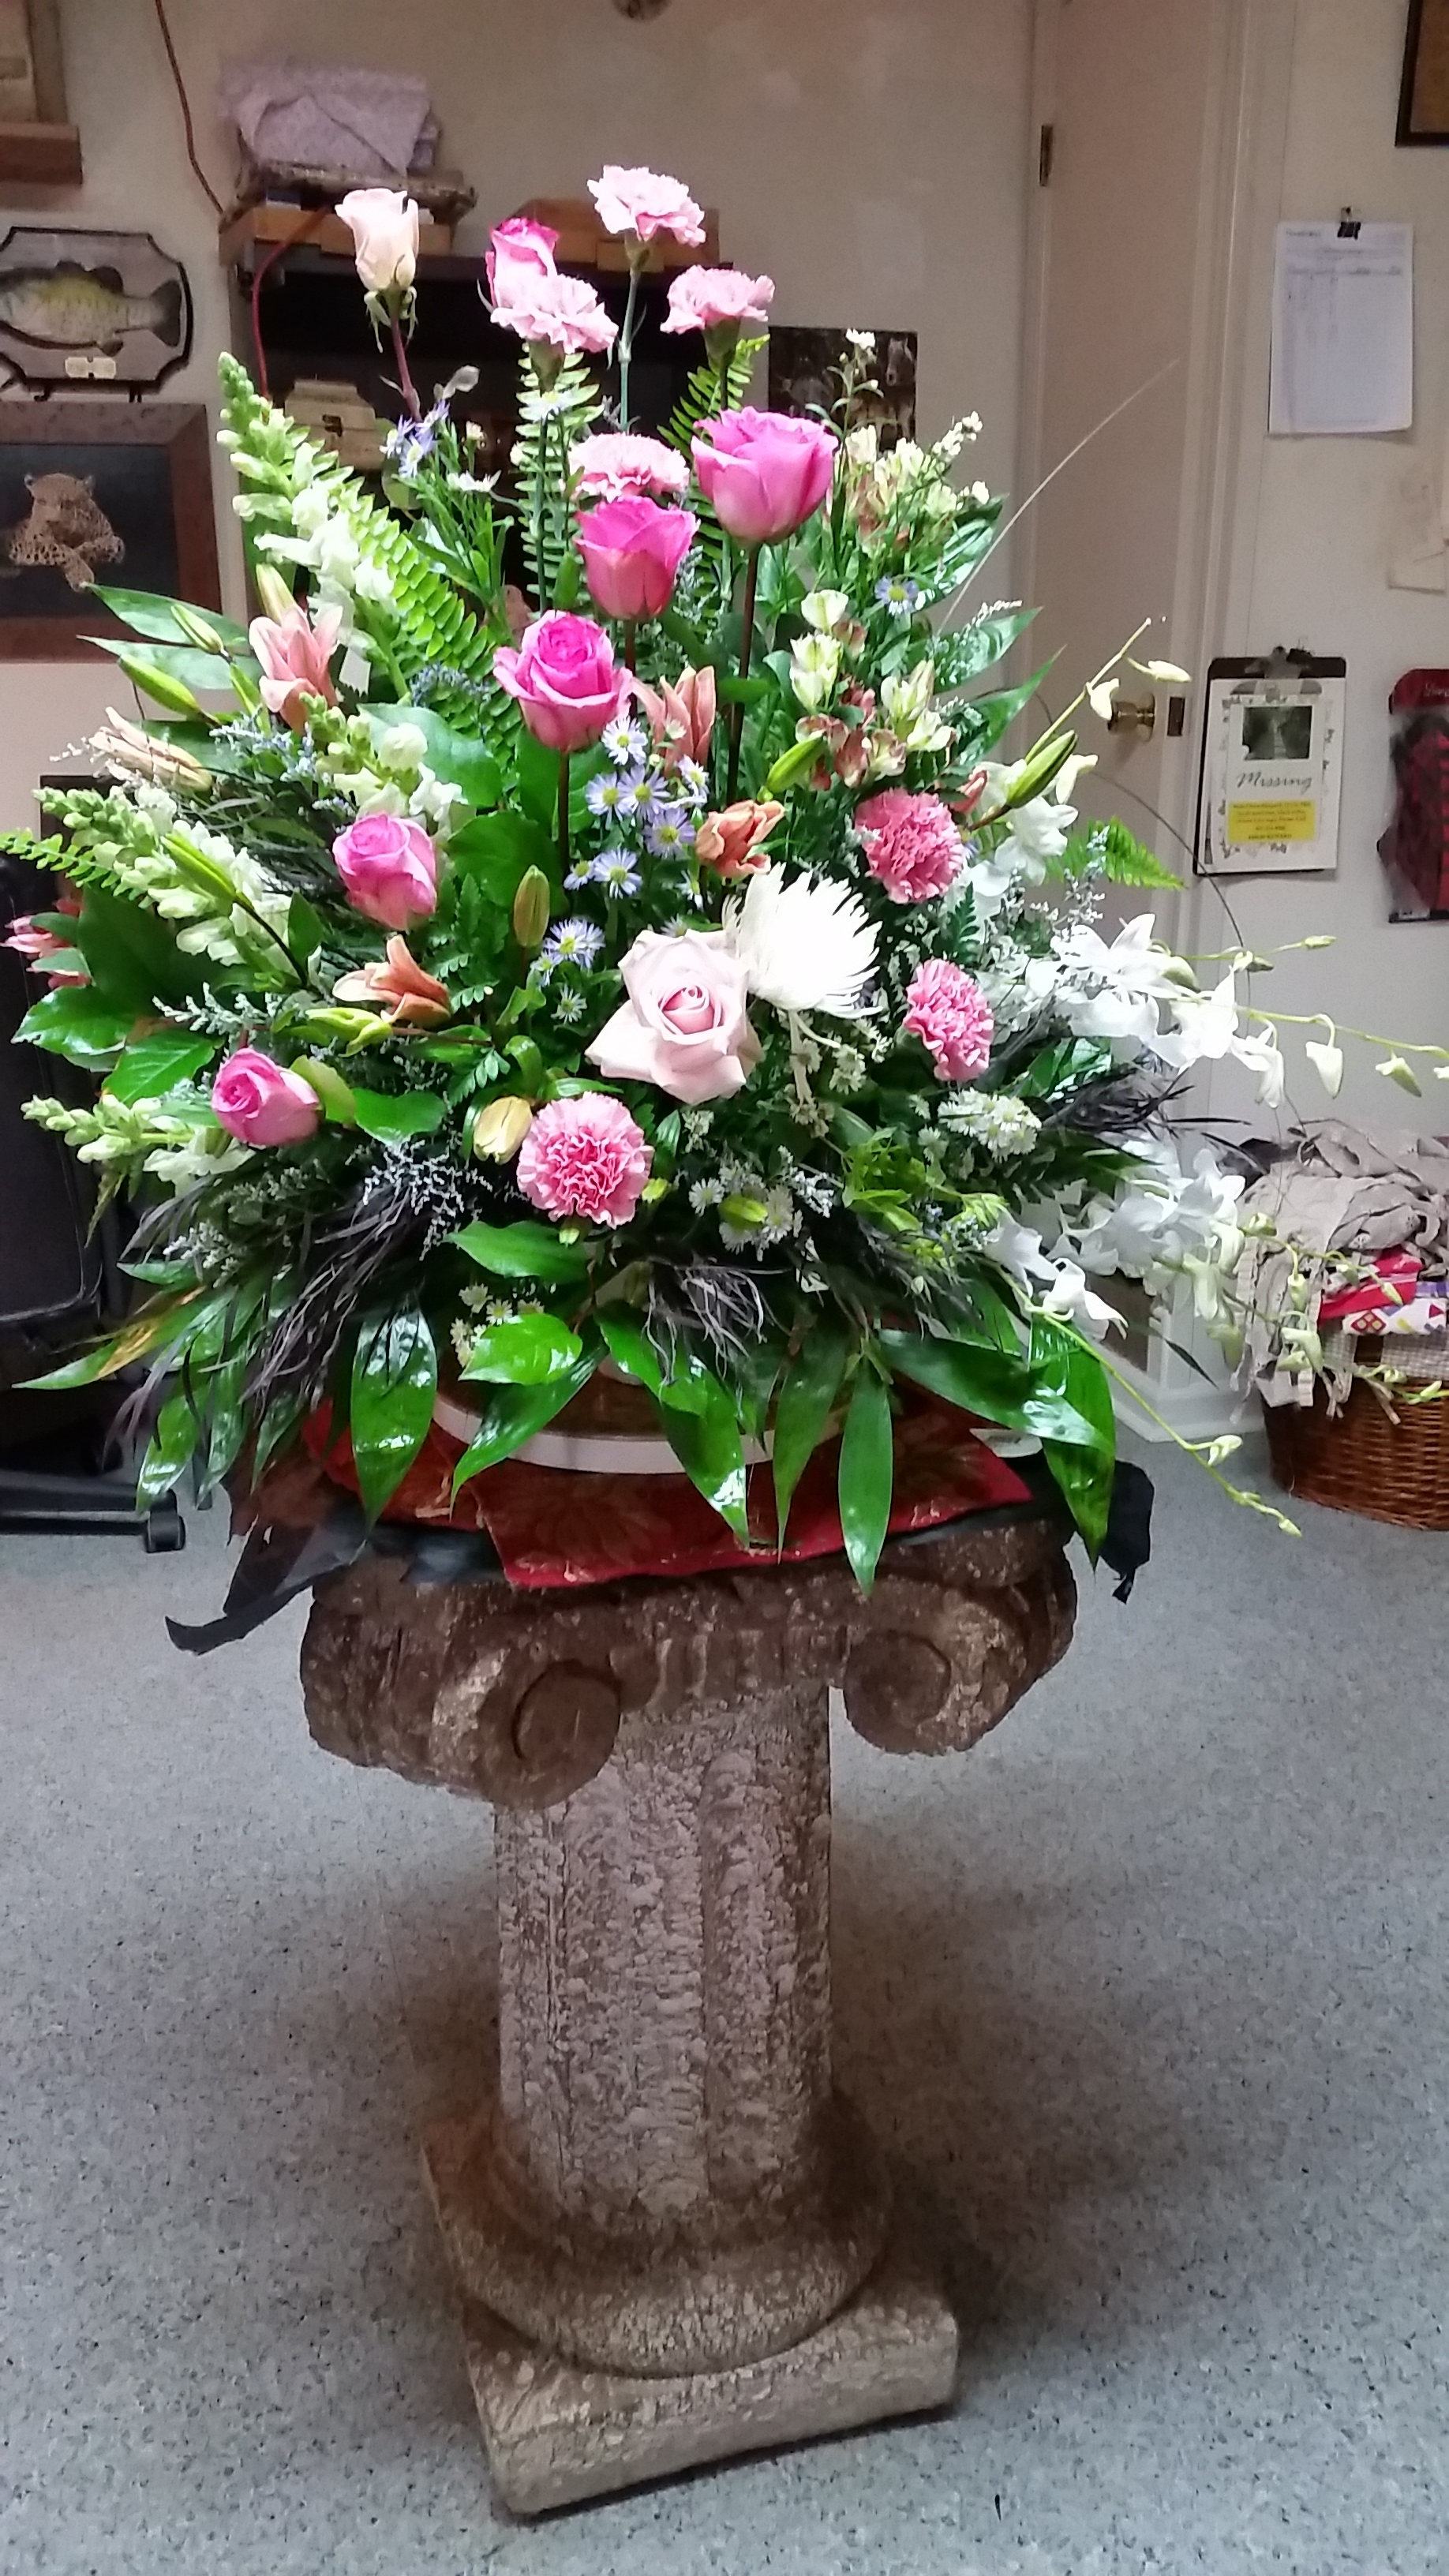 Sympathy flowers sympathy florist in gainesville ga send sympathy funeral flowers today same day delivery to gainesville ga and surrounding areas buy the freshest flowers from your flower girl florist dhlflorist Choice Image